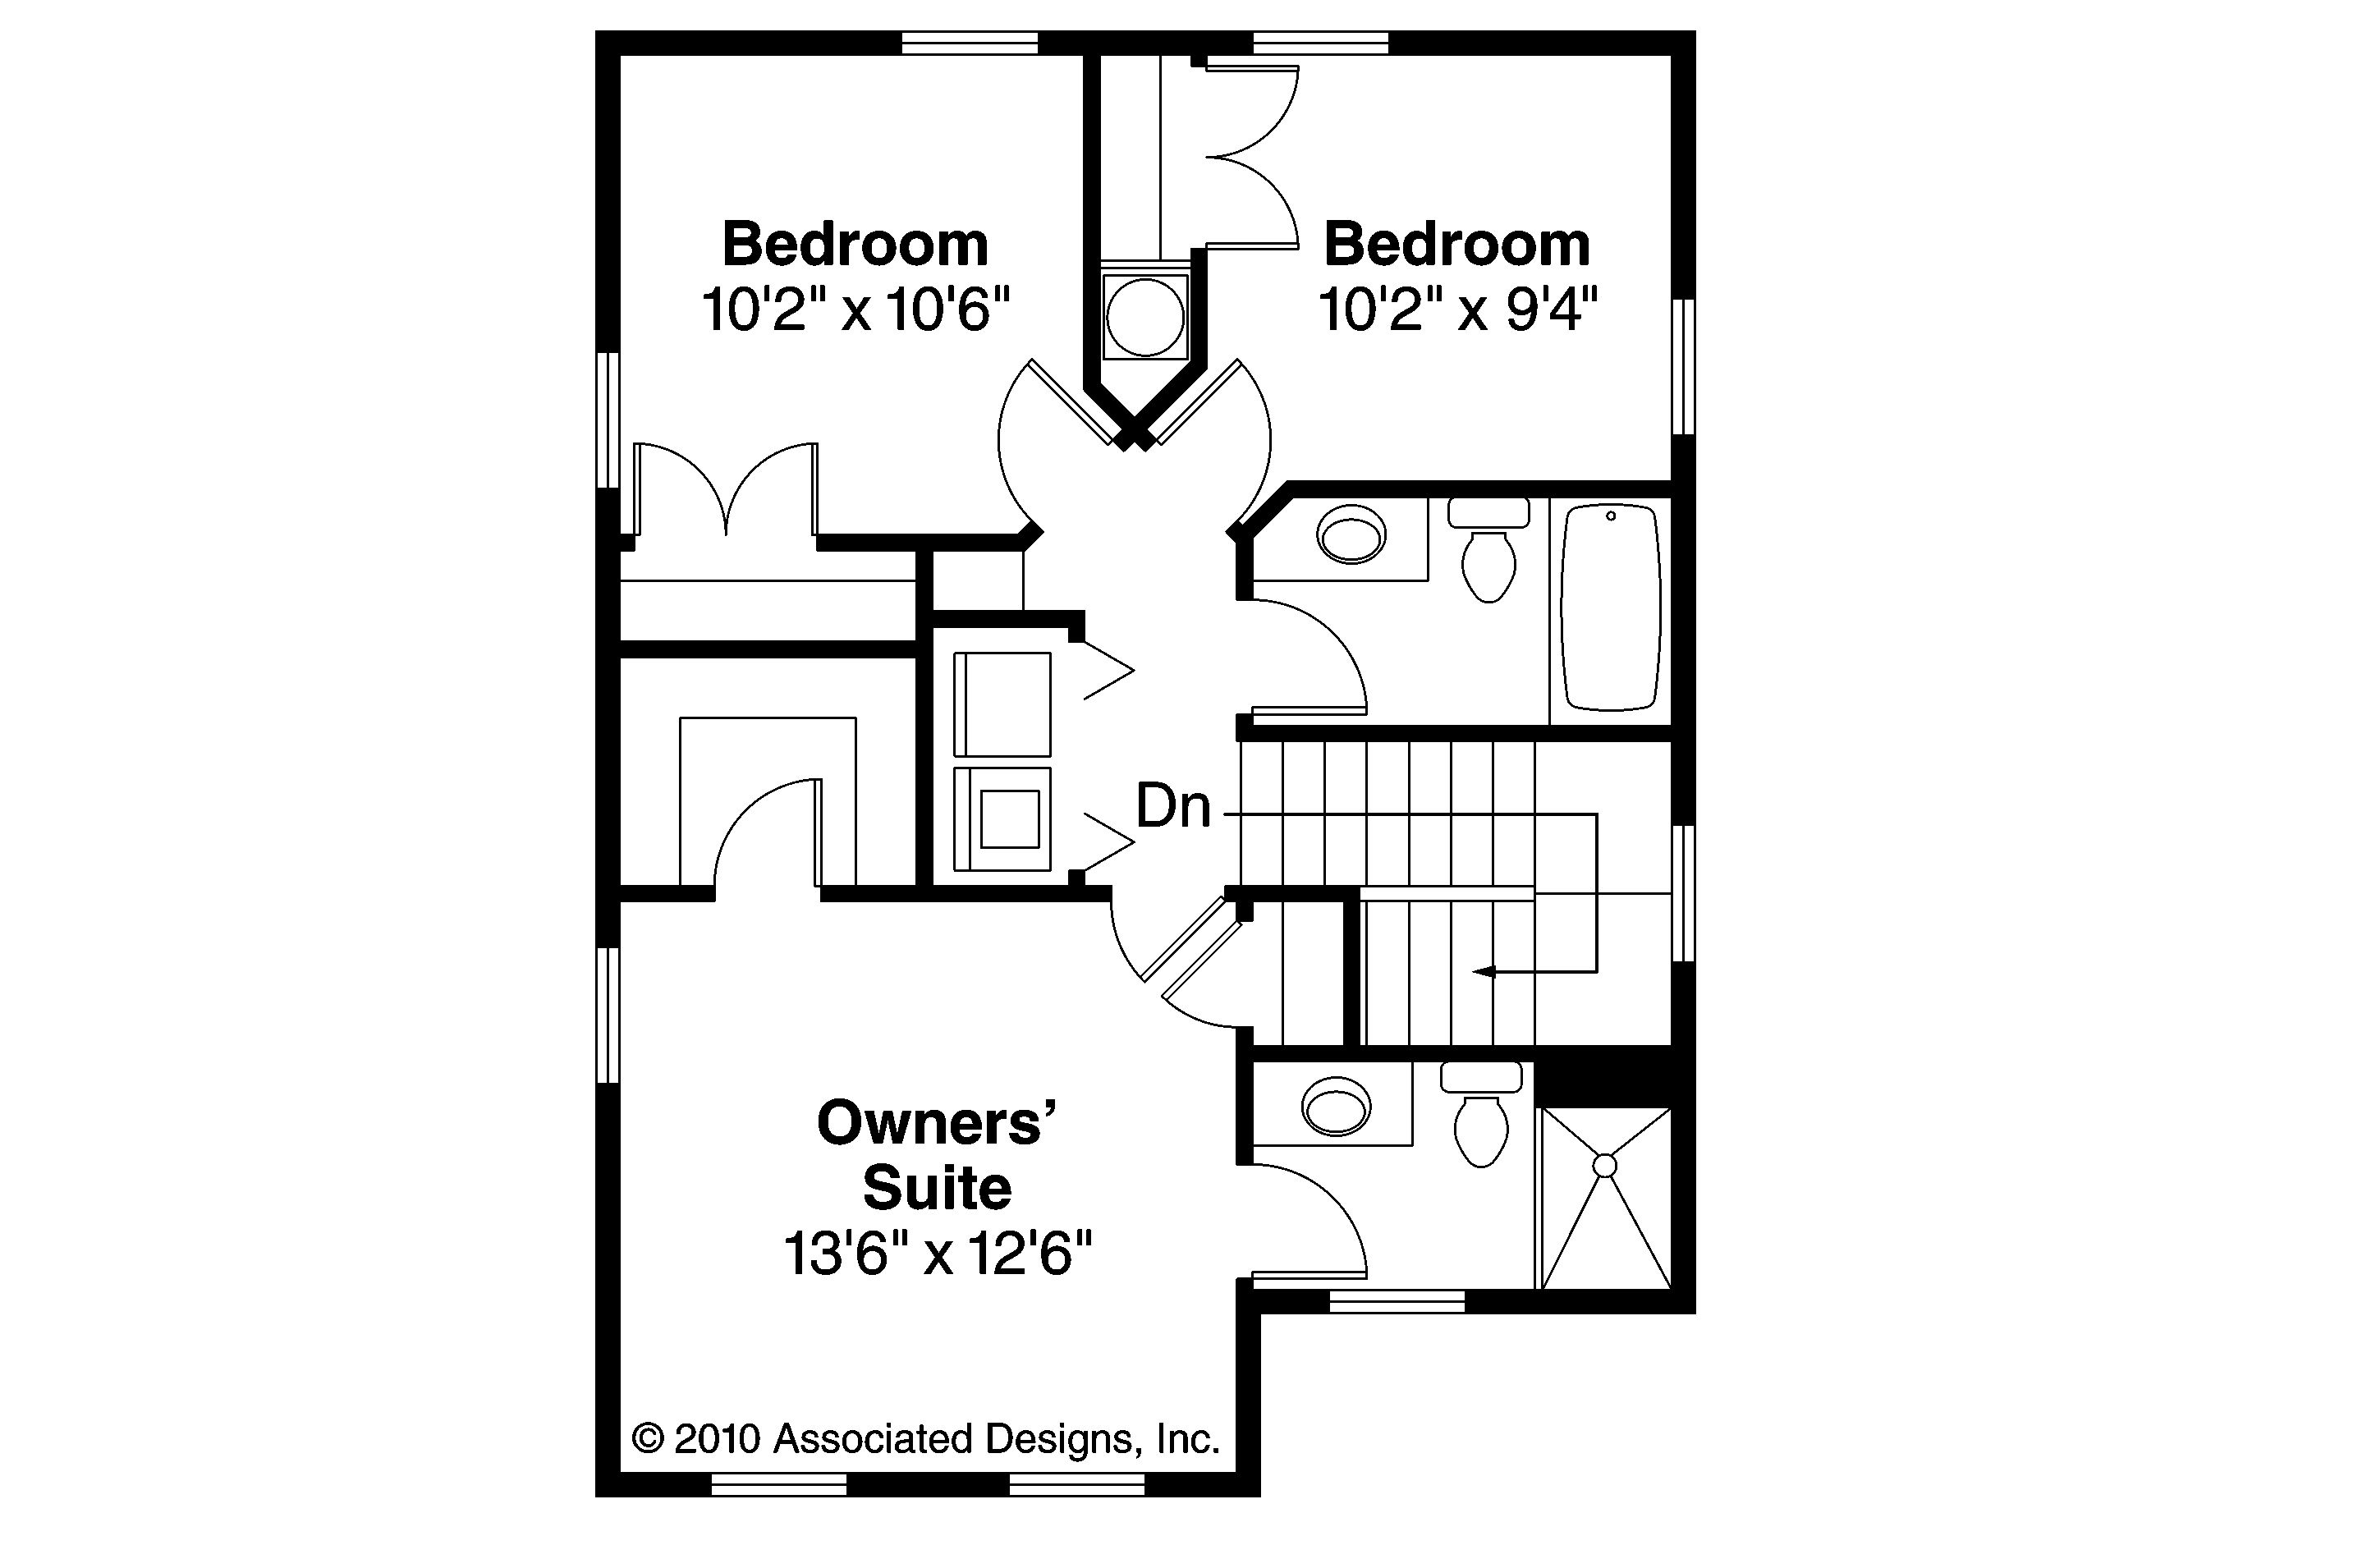 3 Bedroom Home Plans Designs Floor Plans Cottage House Emerson Endearing Second Designs And